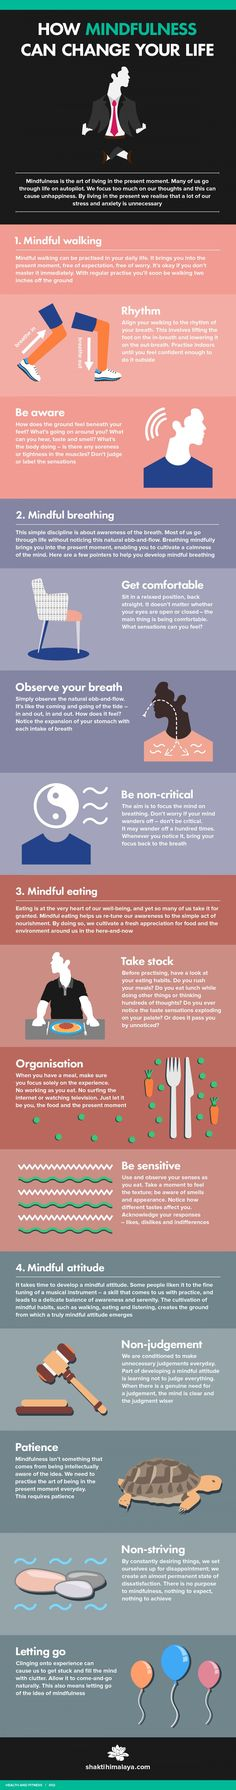 "Mindfulness is not a magic trick that all of a sudden eliminates stress and gives you the life of your dreams. But people who have integrated a mindfulness practice into their lives, repeatedly use the phrase ""life-changing"" to describe it. Whether it's here in this Infographic or somewhere in the future, we hope the"